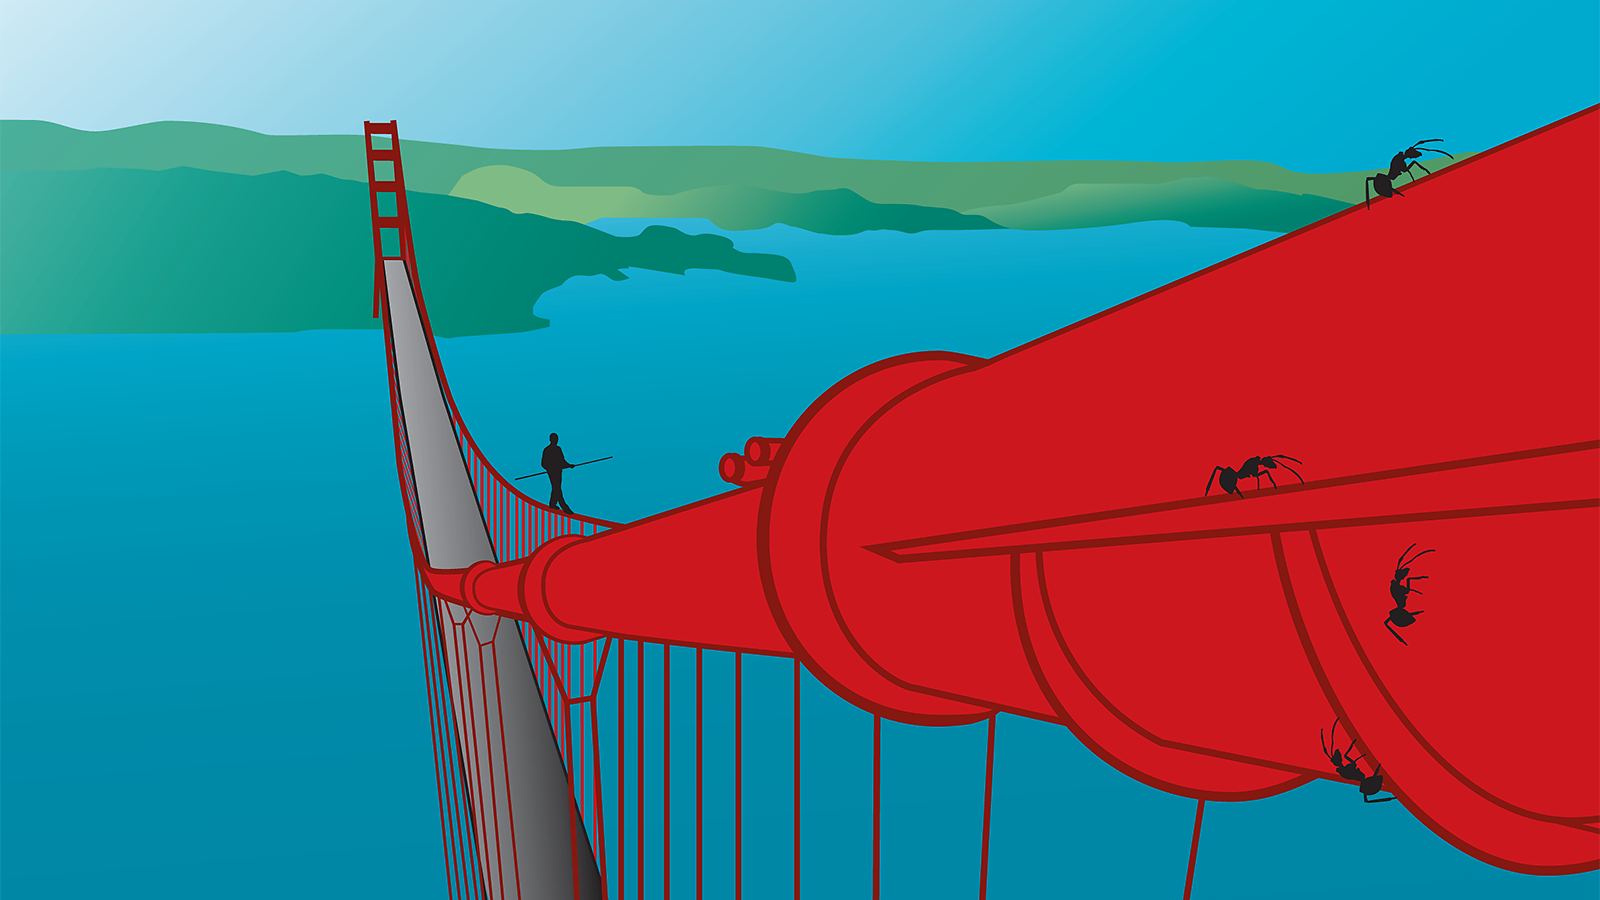 Illustration of a man tightrope walking the Golden Gate Bridge and ants walking around the cable